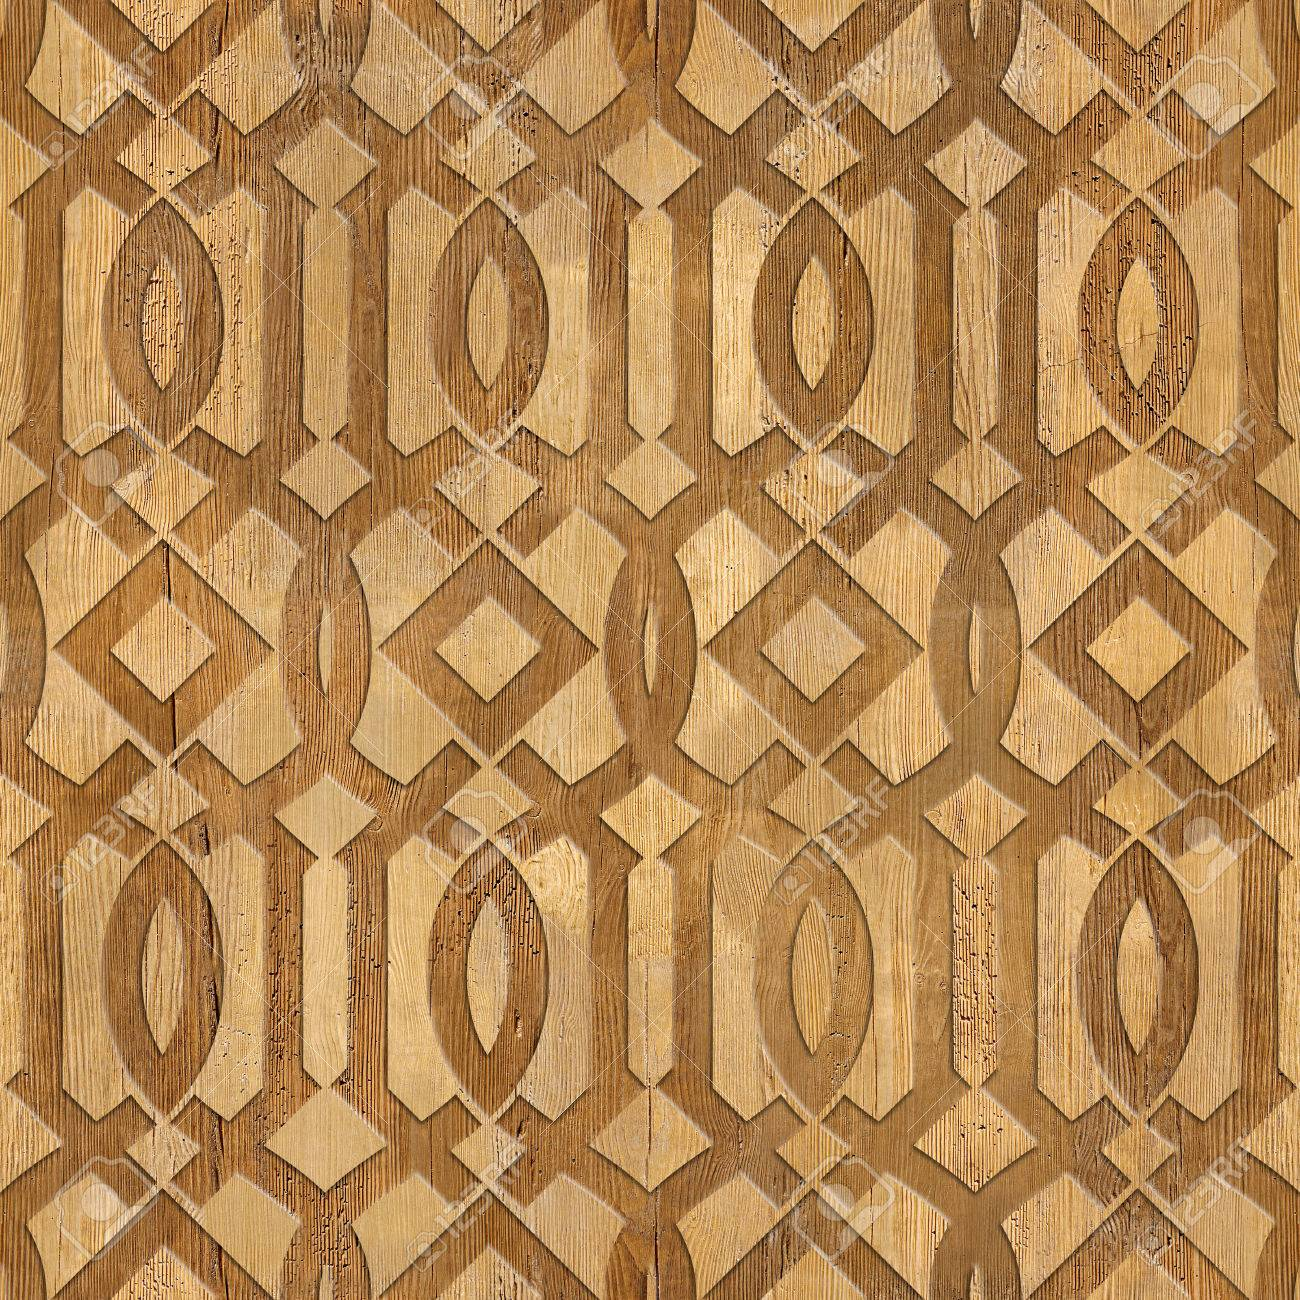 decorative arabic pattern interior design wallpaper interior decorative interior wall panels